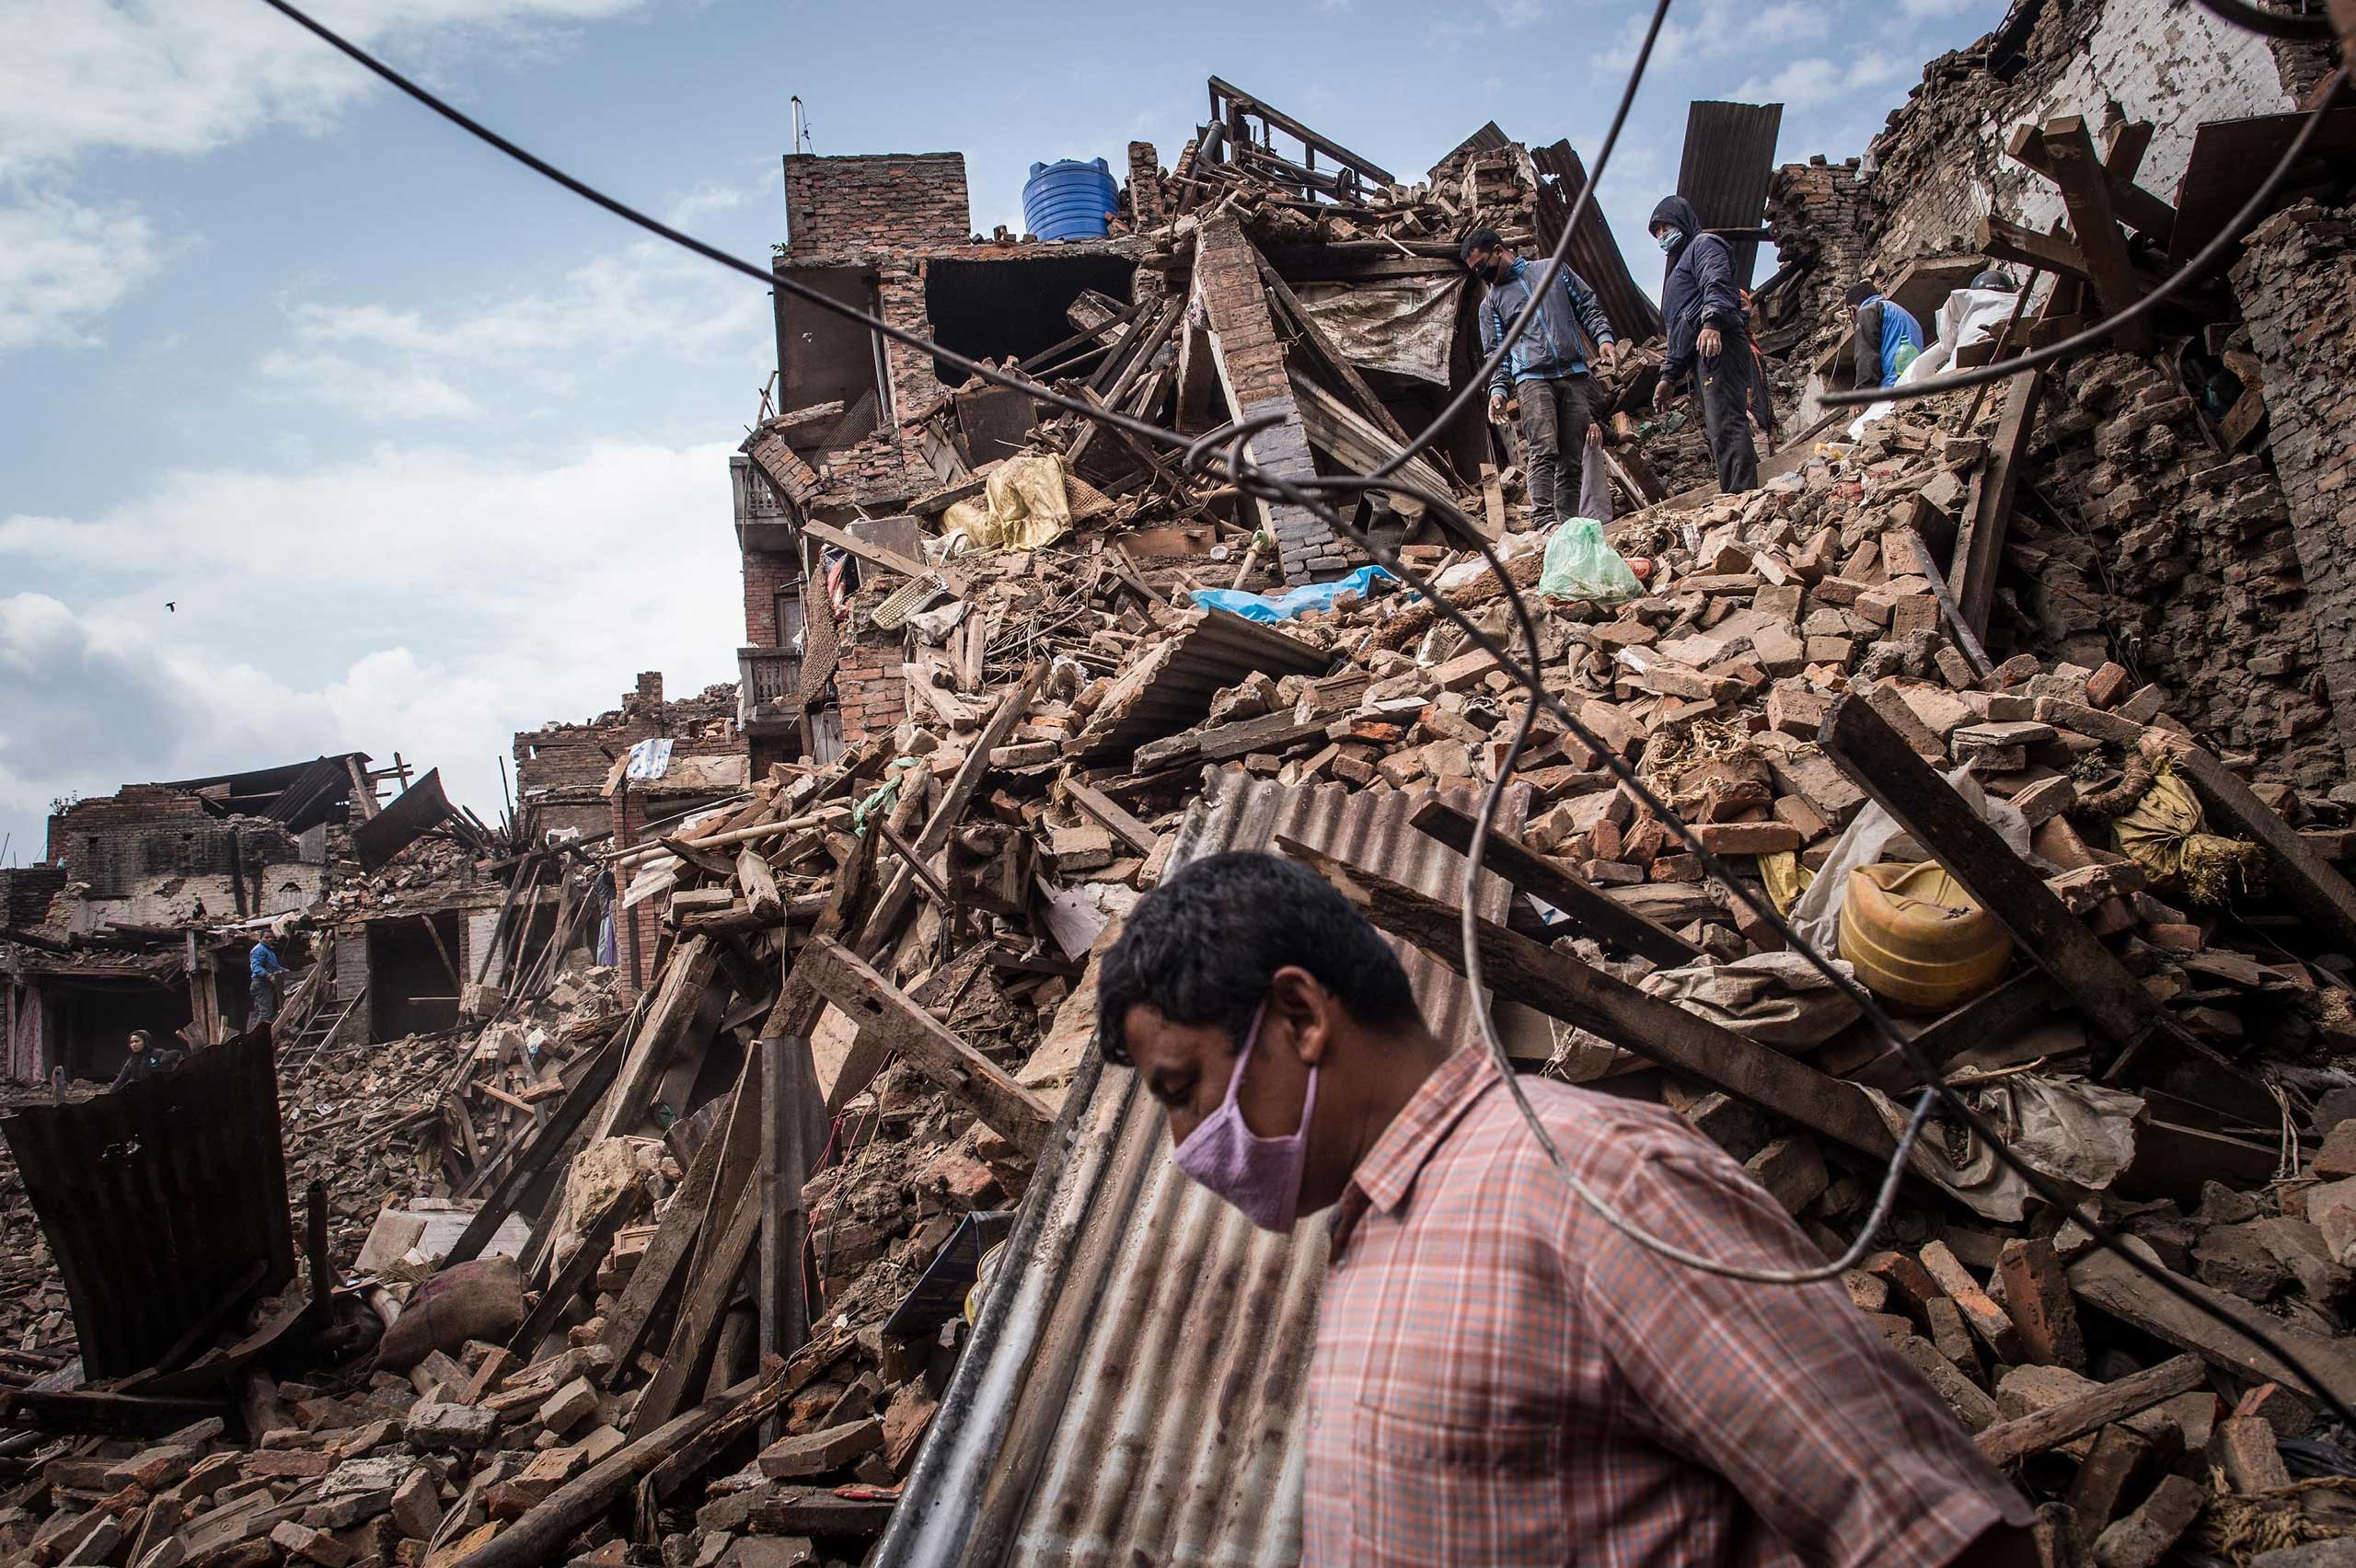 Nepalese victims of the earthquake search for their belongings among debris of their homes in Bhaktapur, Nepal, on April 29, 2015.